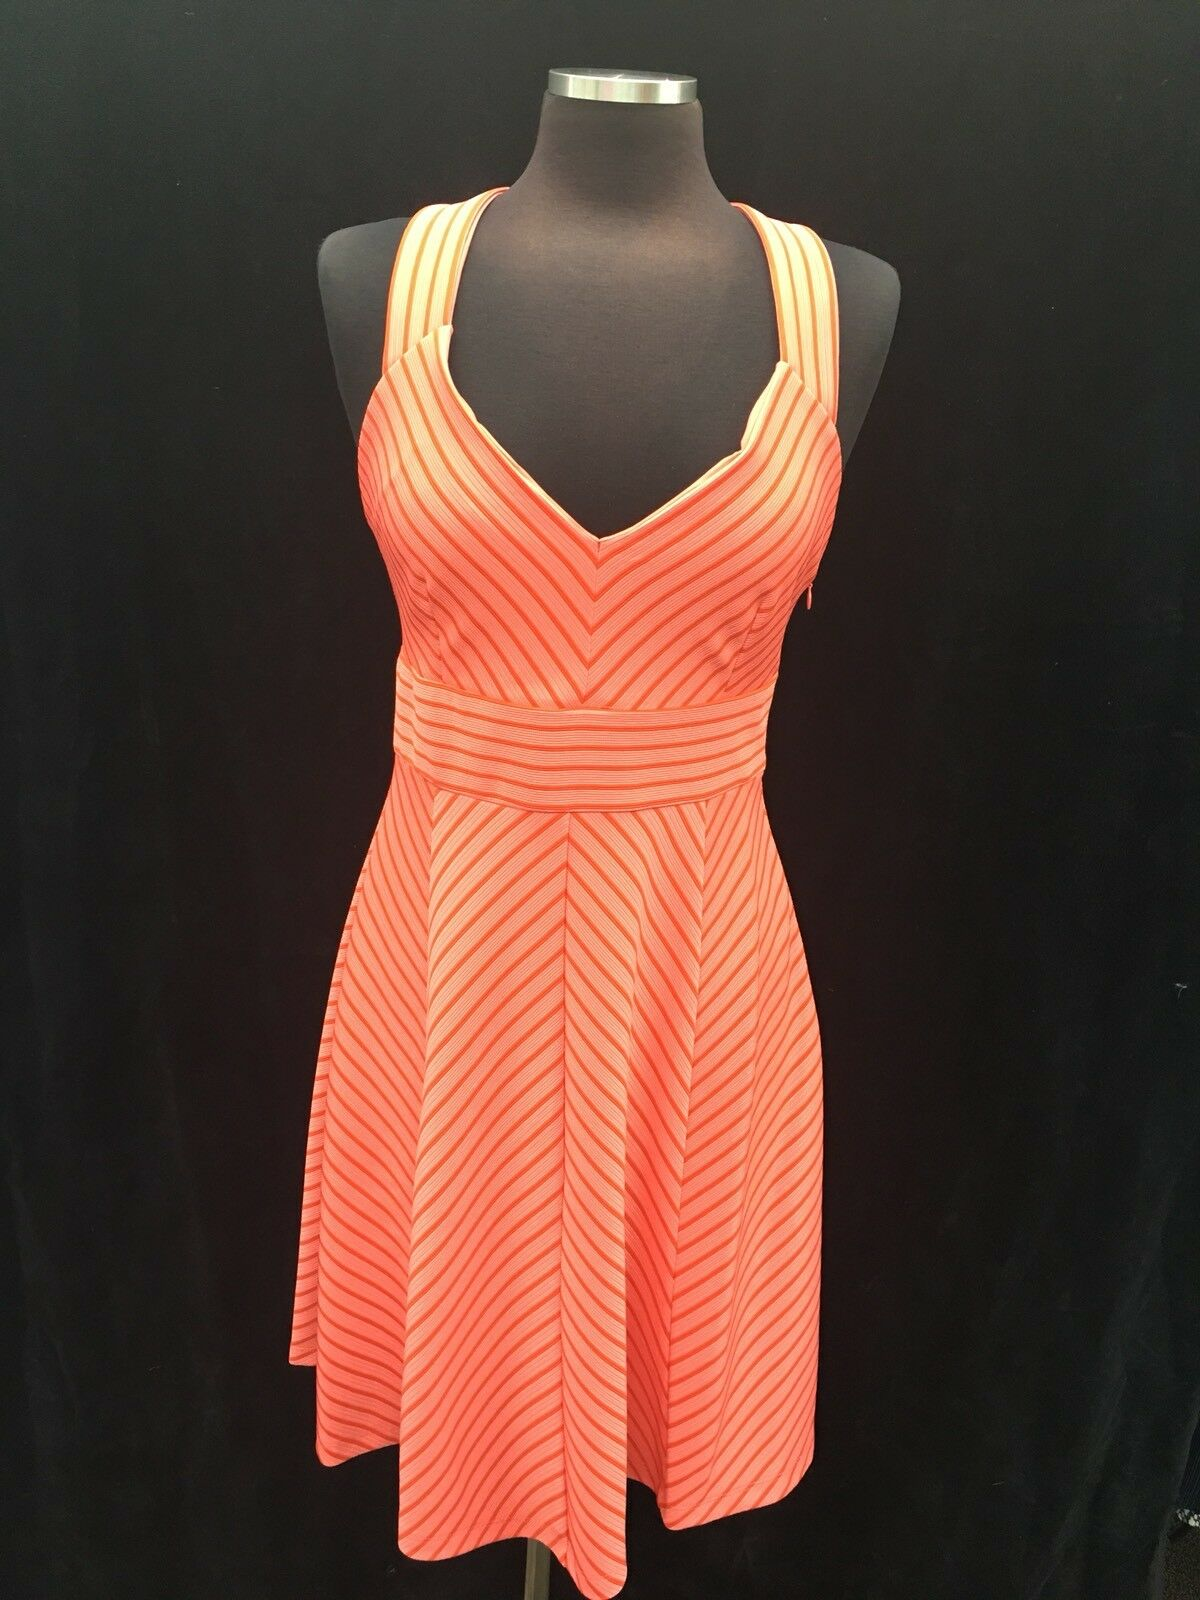 ADRIANNA PAPELL DRESS NEW WITH TAG RETAIL SIZE 6 LENGTH 37